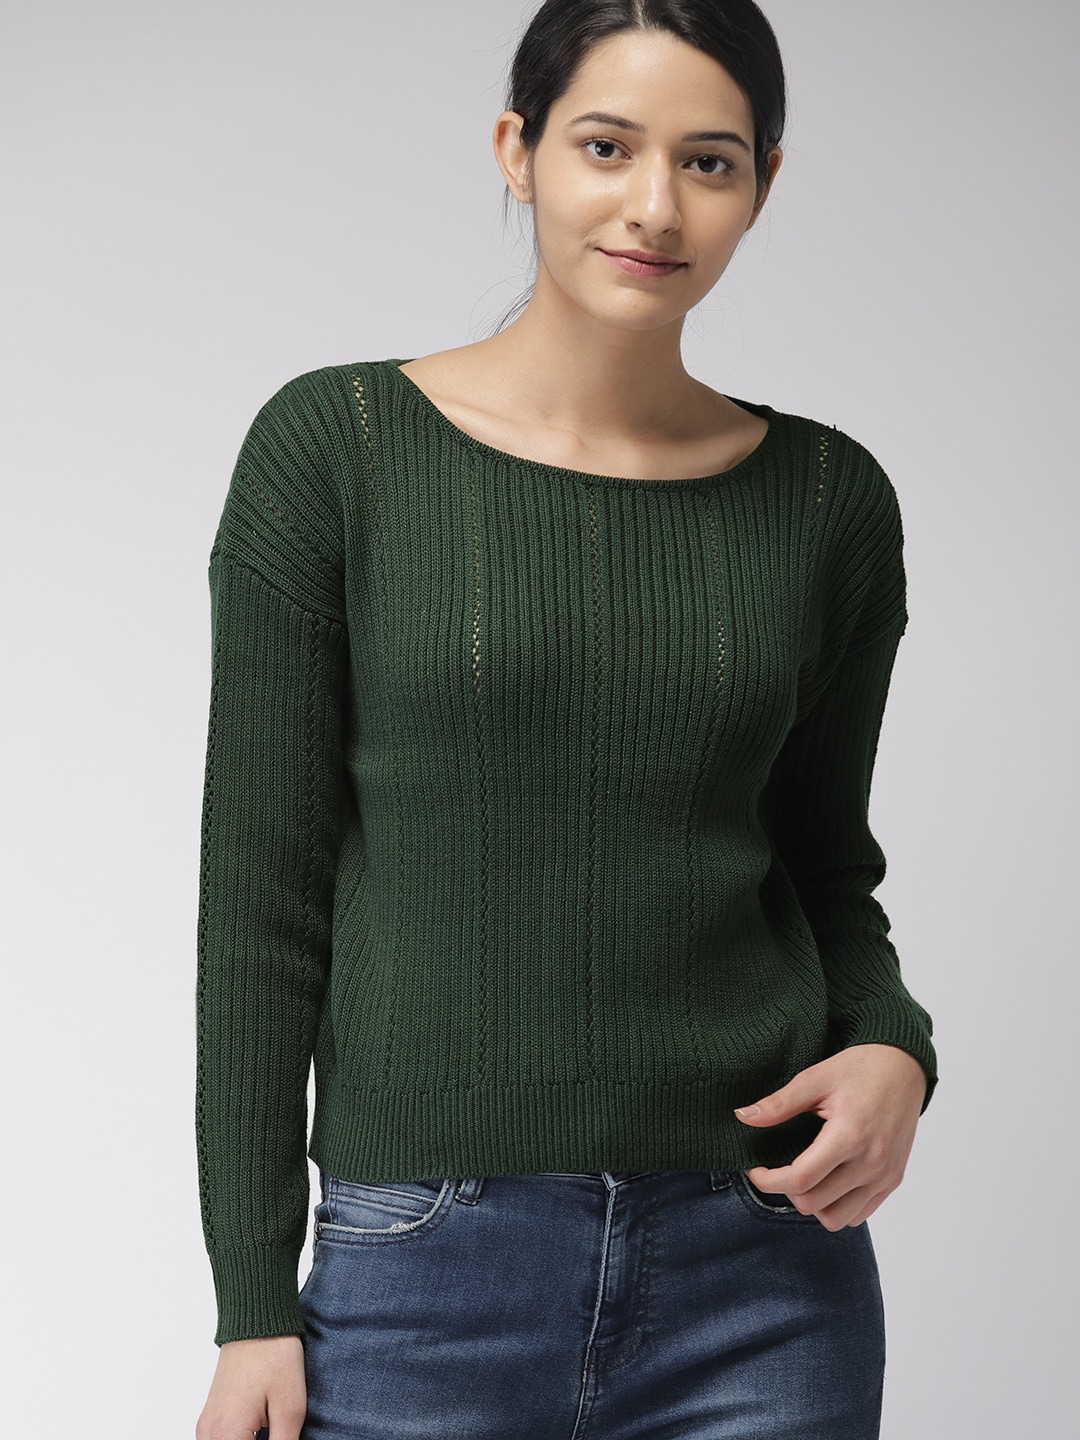 415bbfa1f14 Forever 21 Sweaters - Buy Forever 21 Sweaters online in India